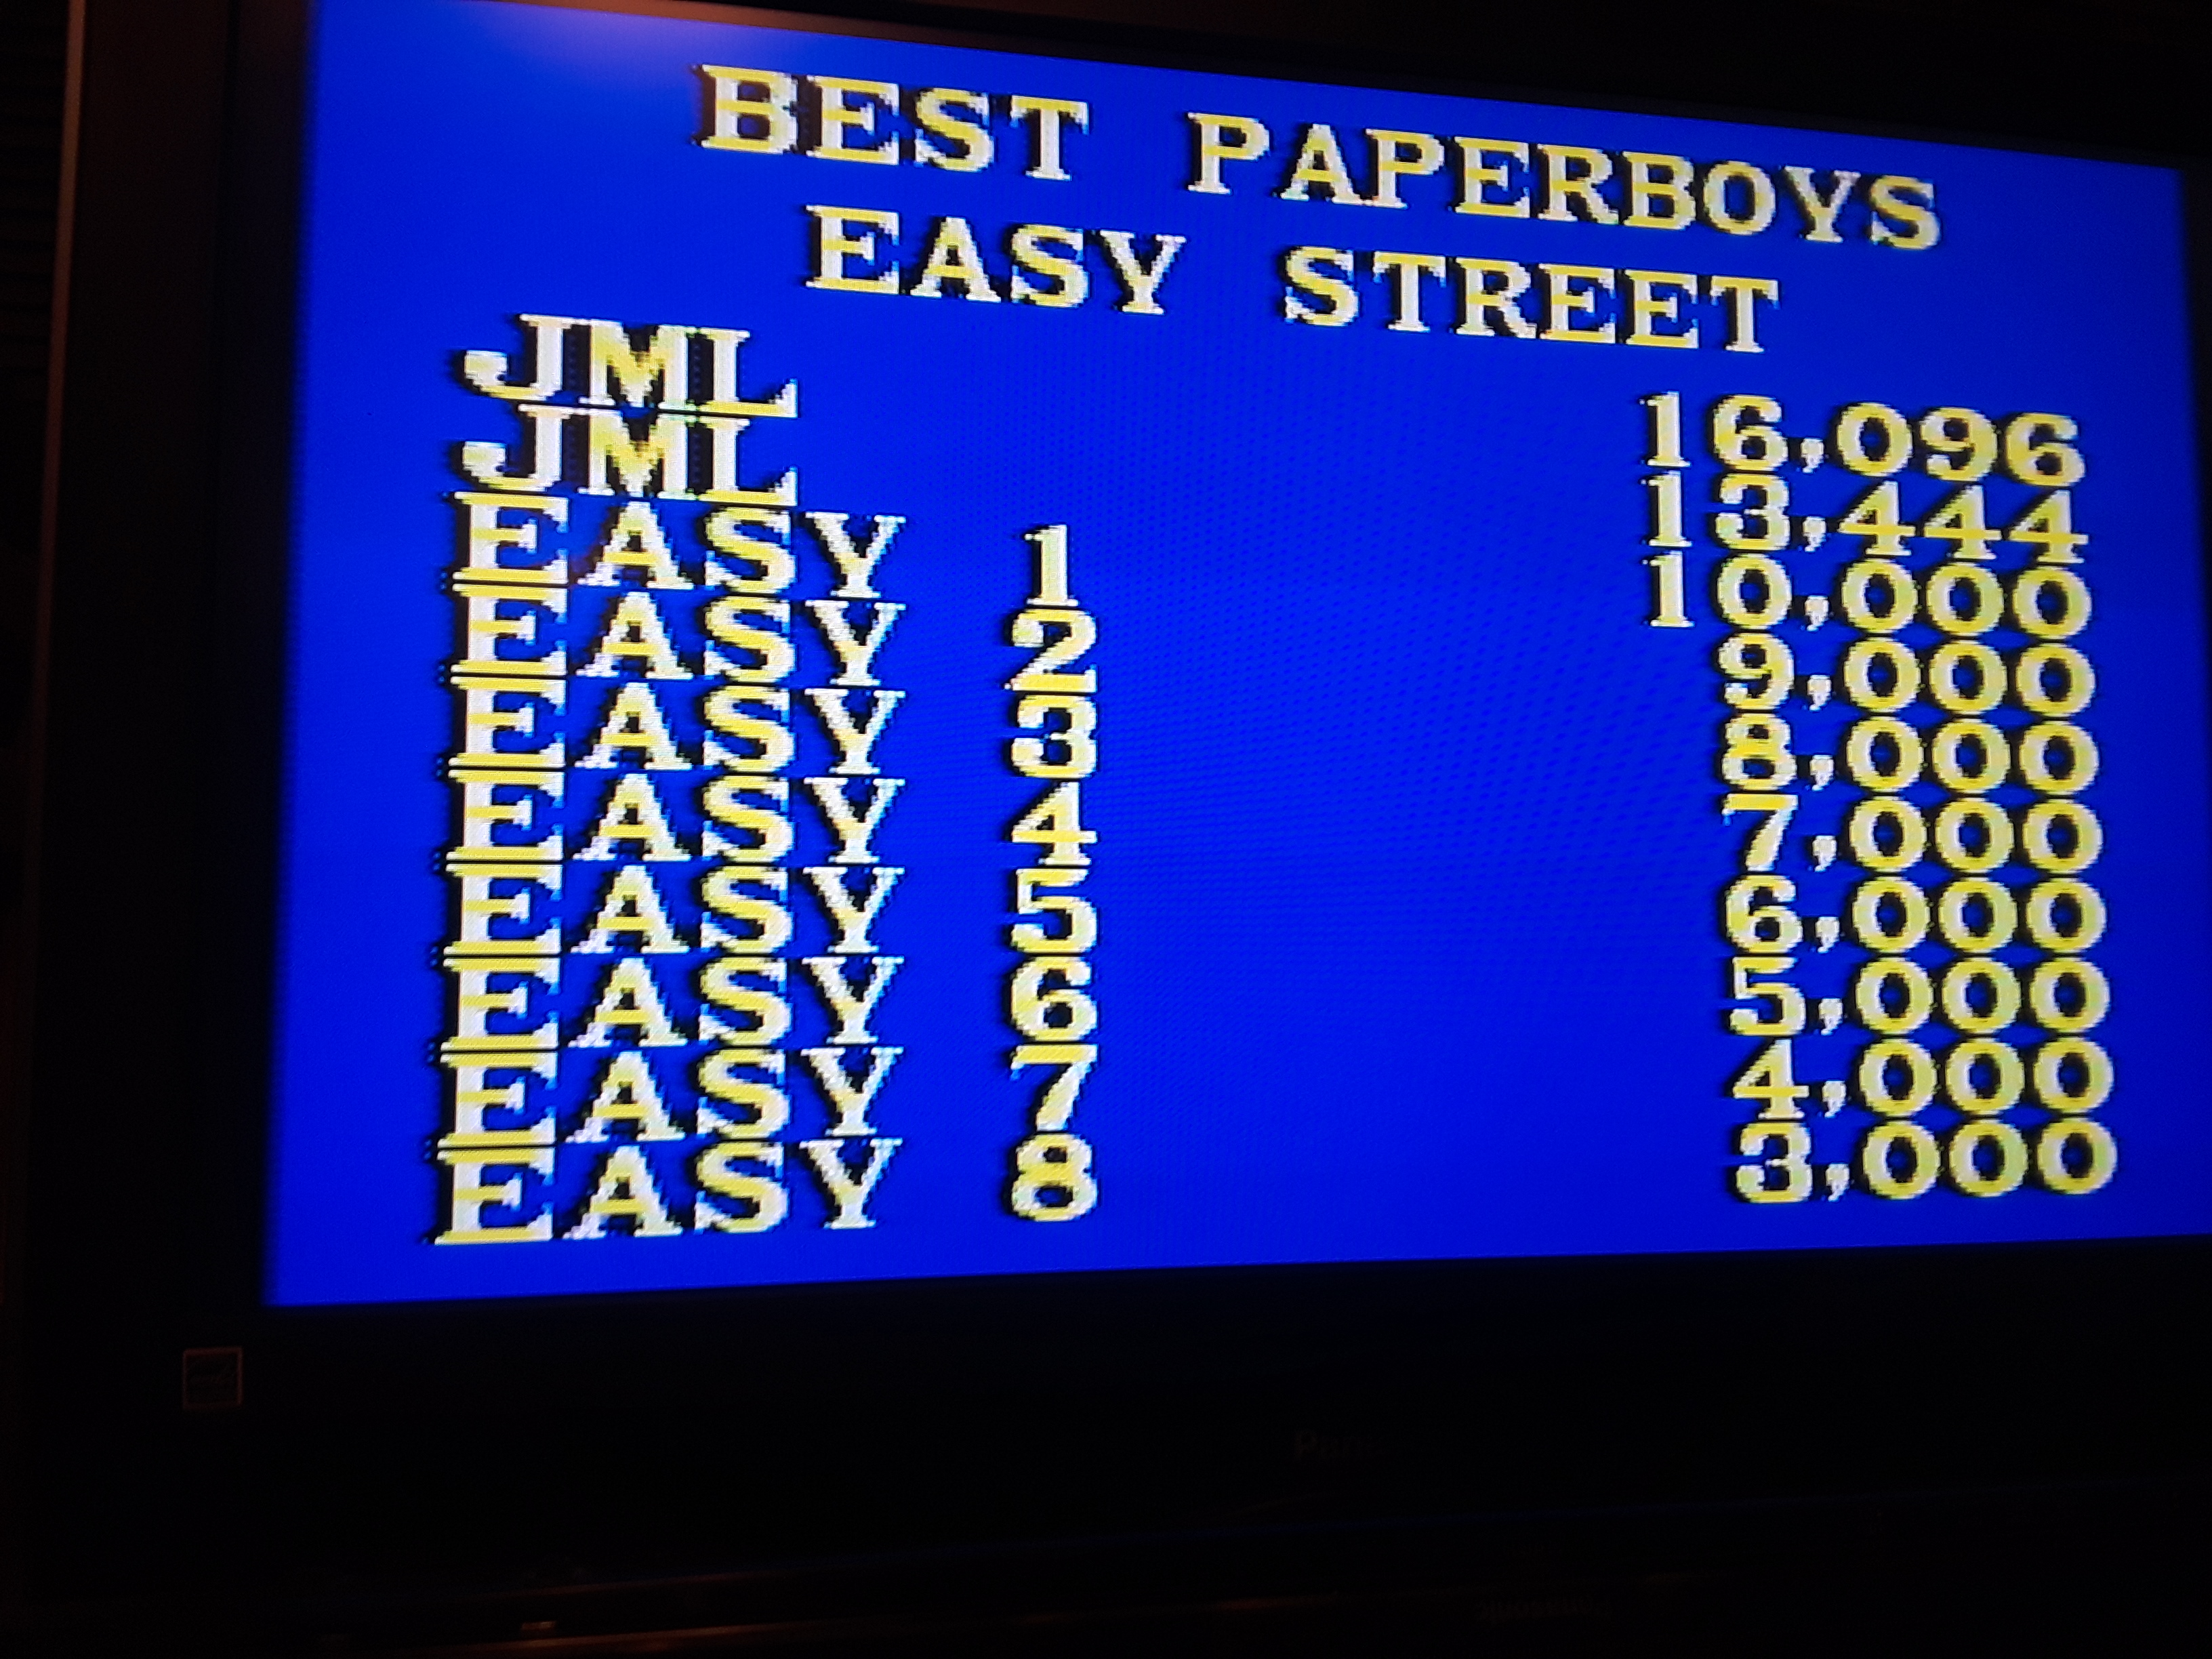 Paper Boy: Easy St [Medium]